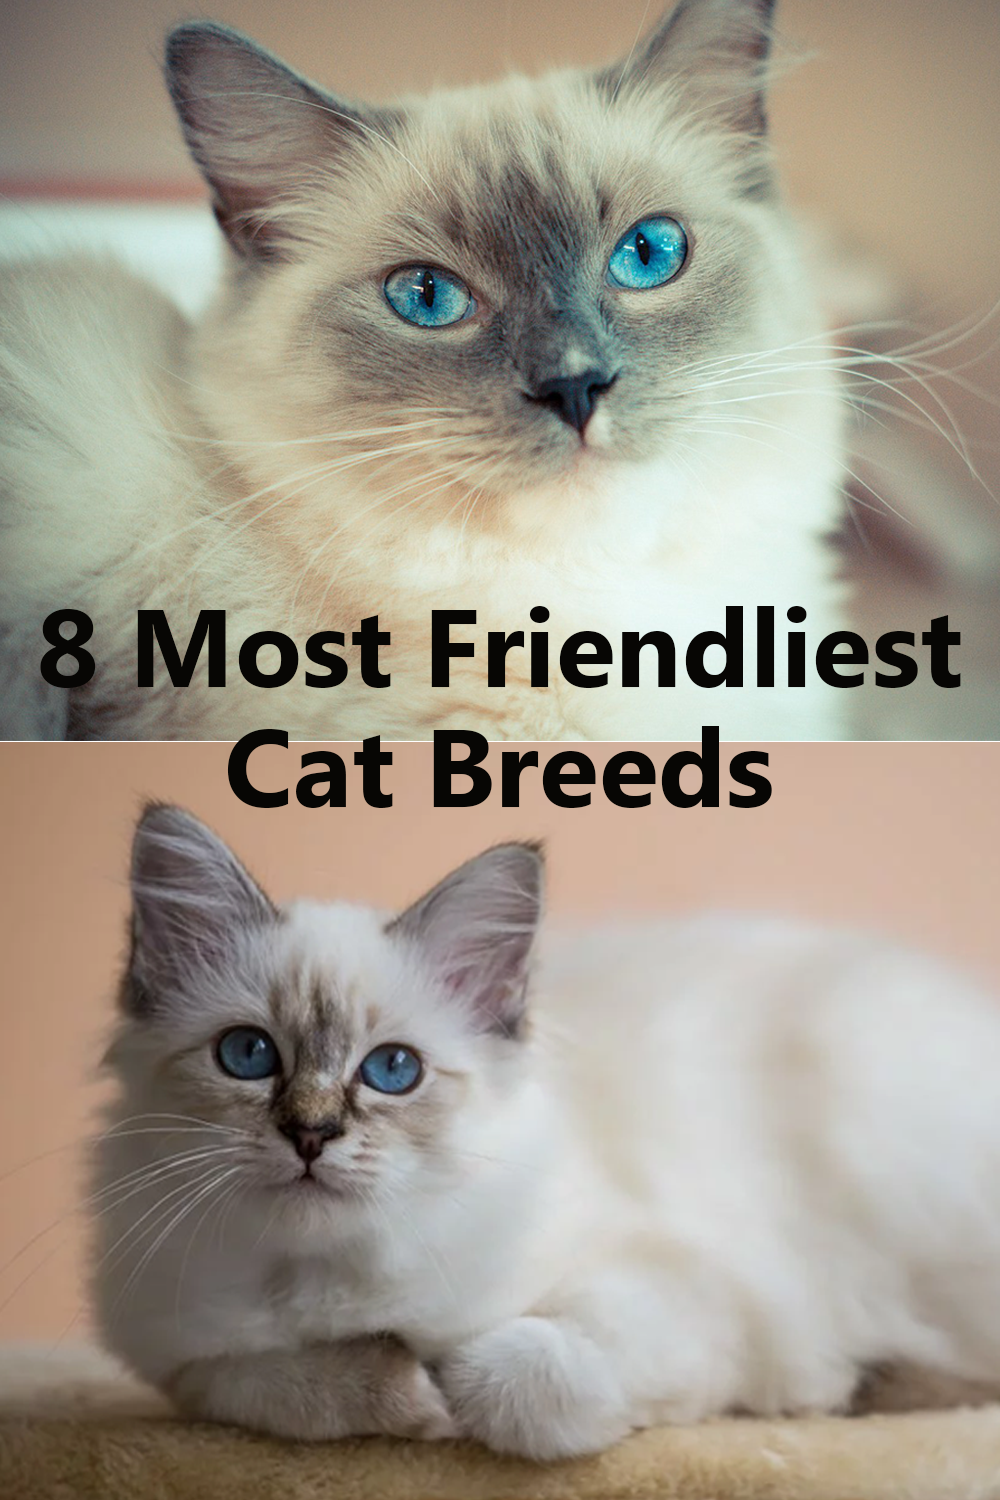 8 Most Affectionate Cat Breeds In The World Cat breeds